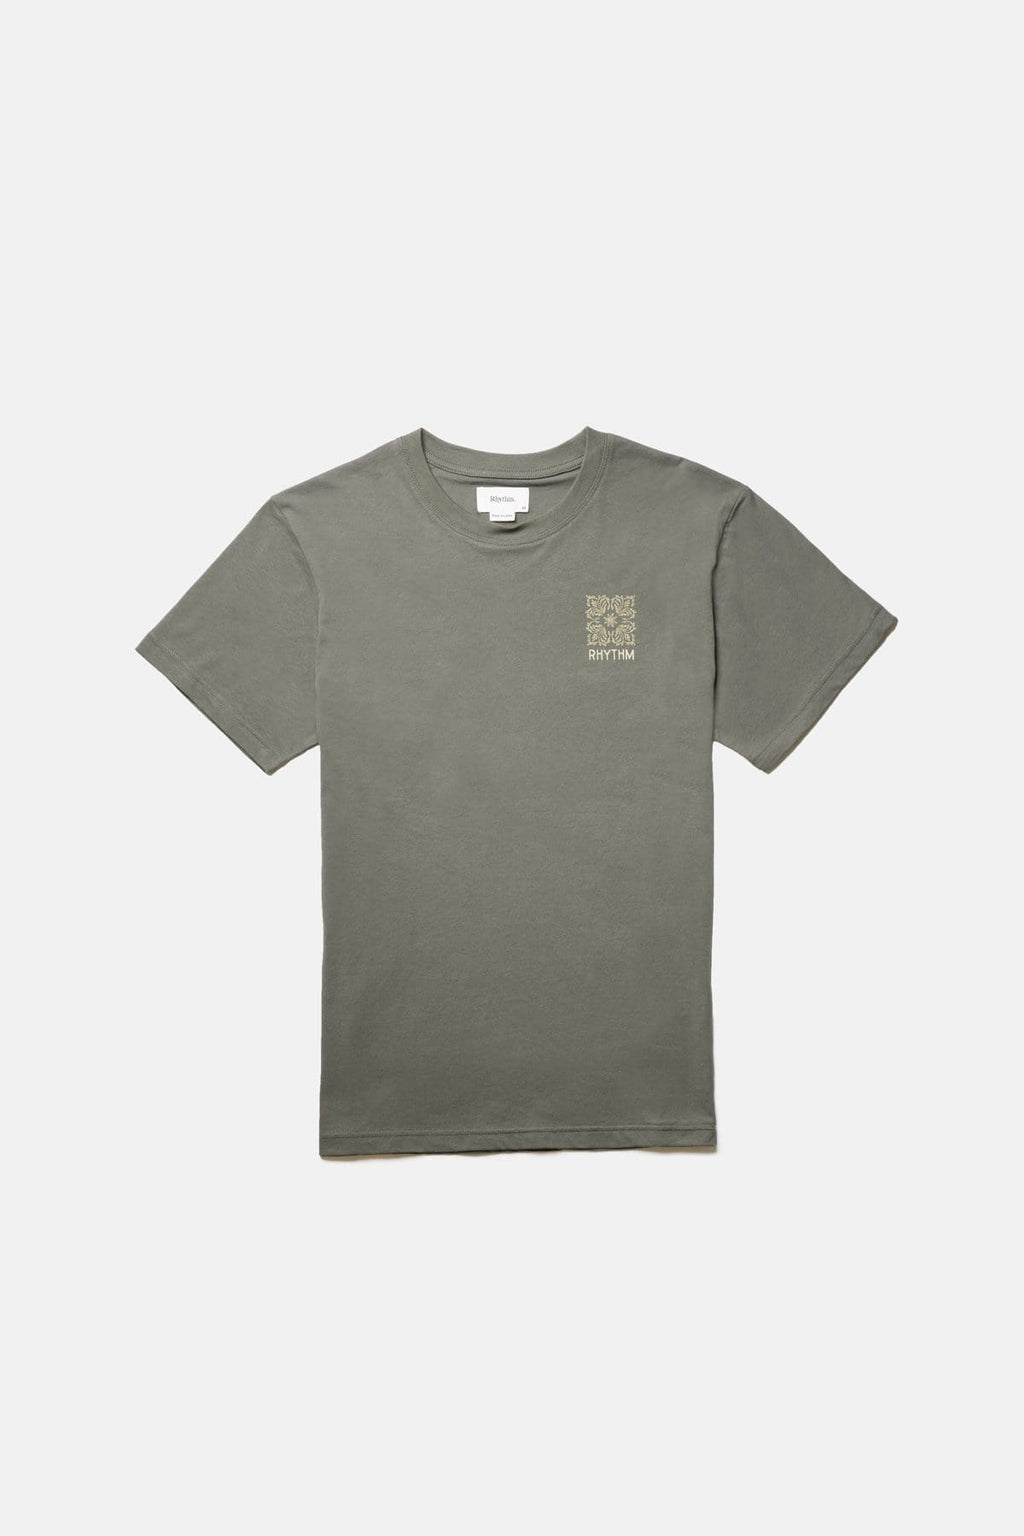 Orchid T-Shirt (Olive)